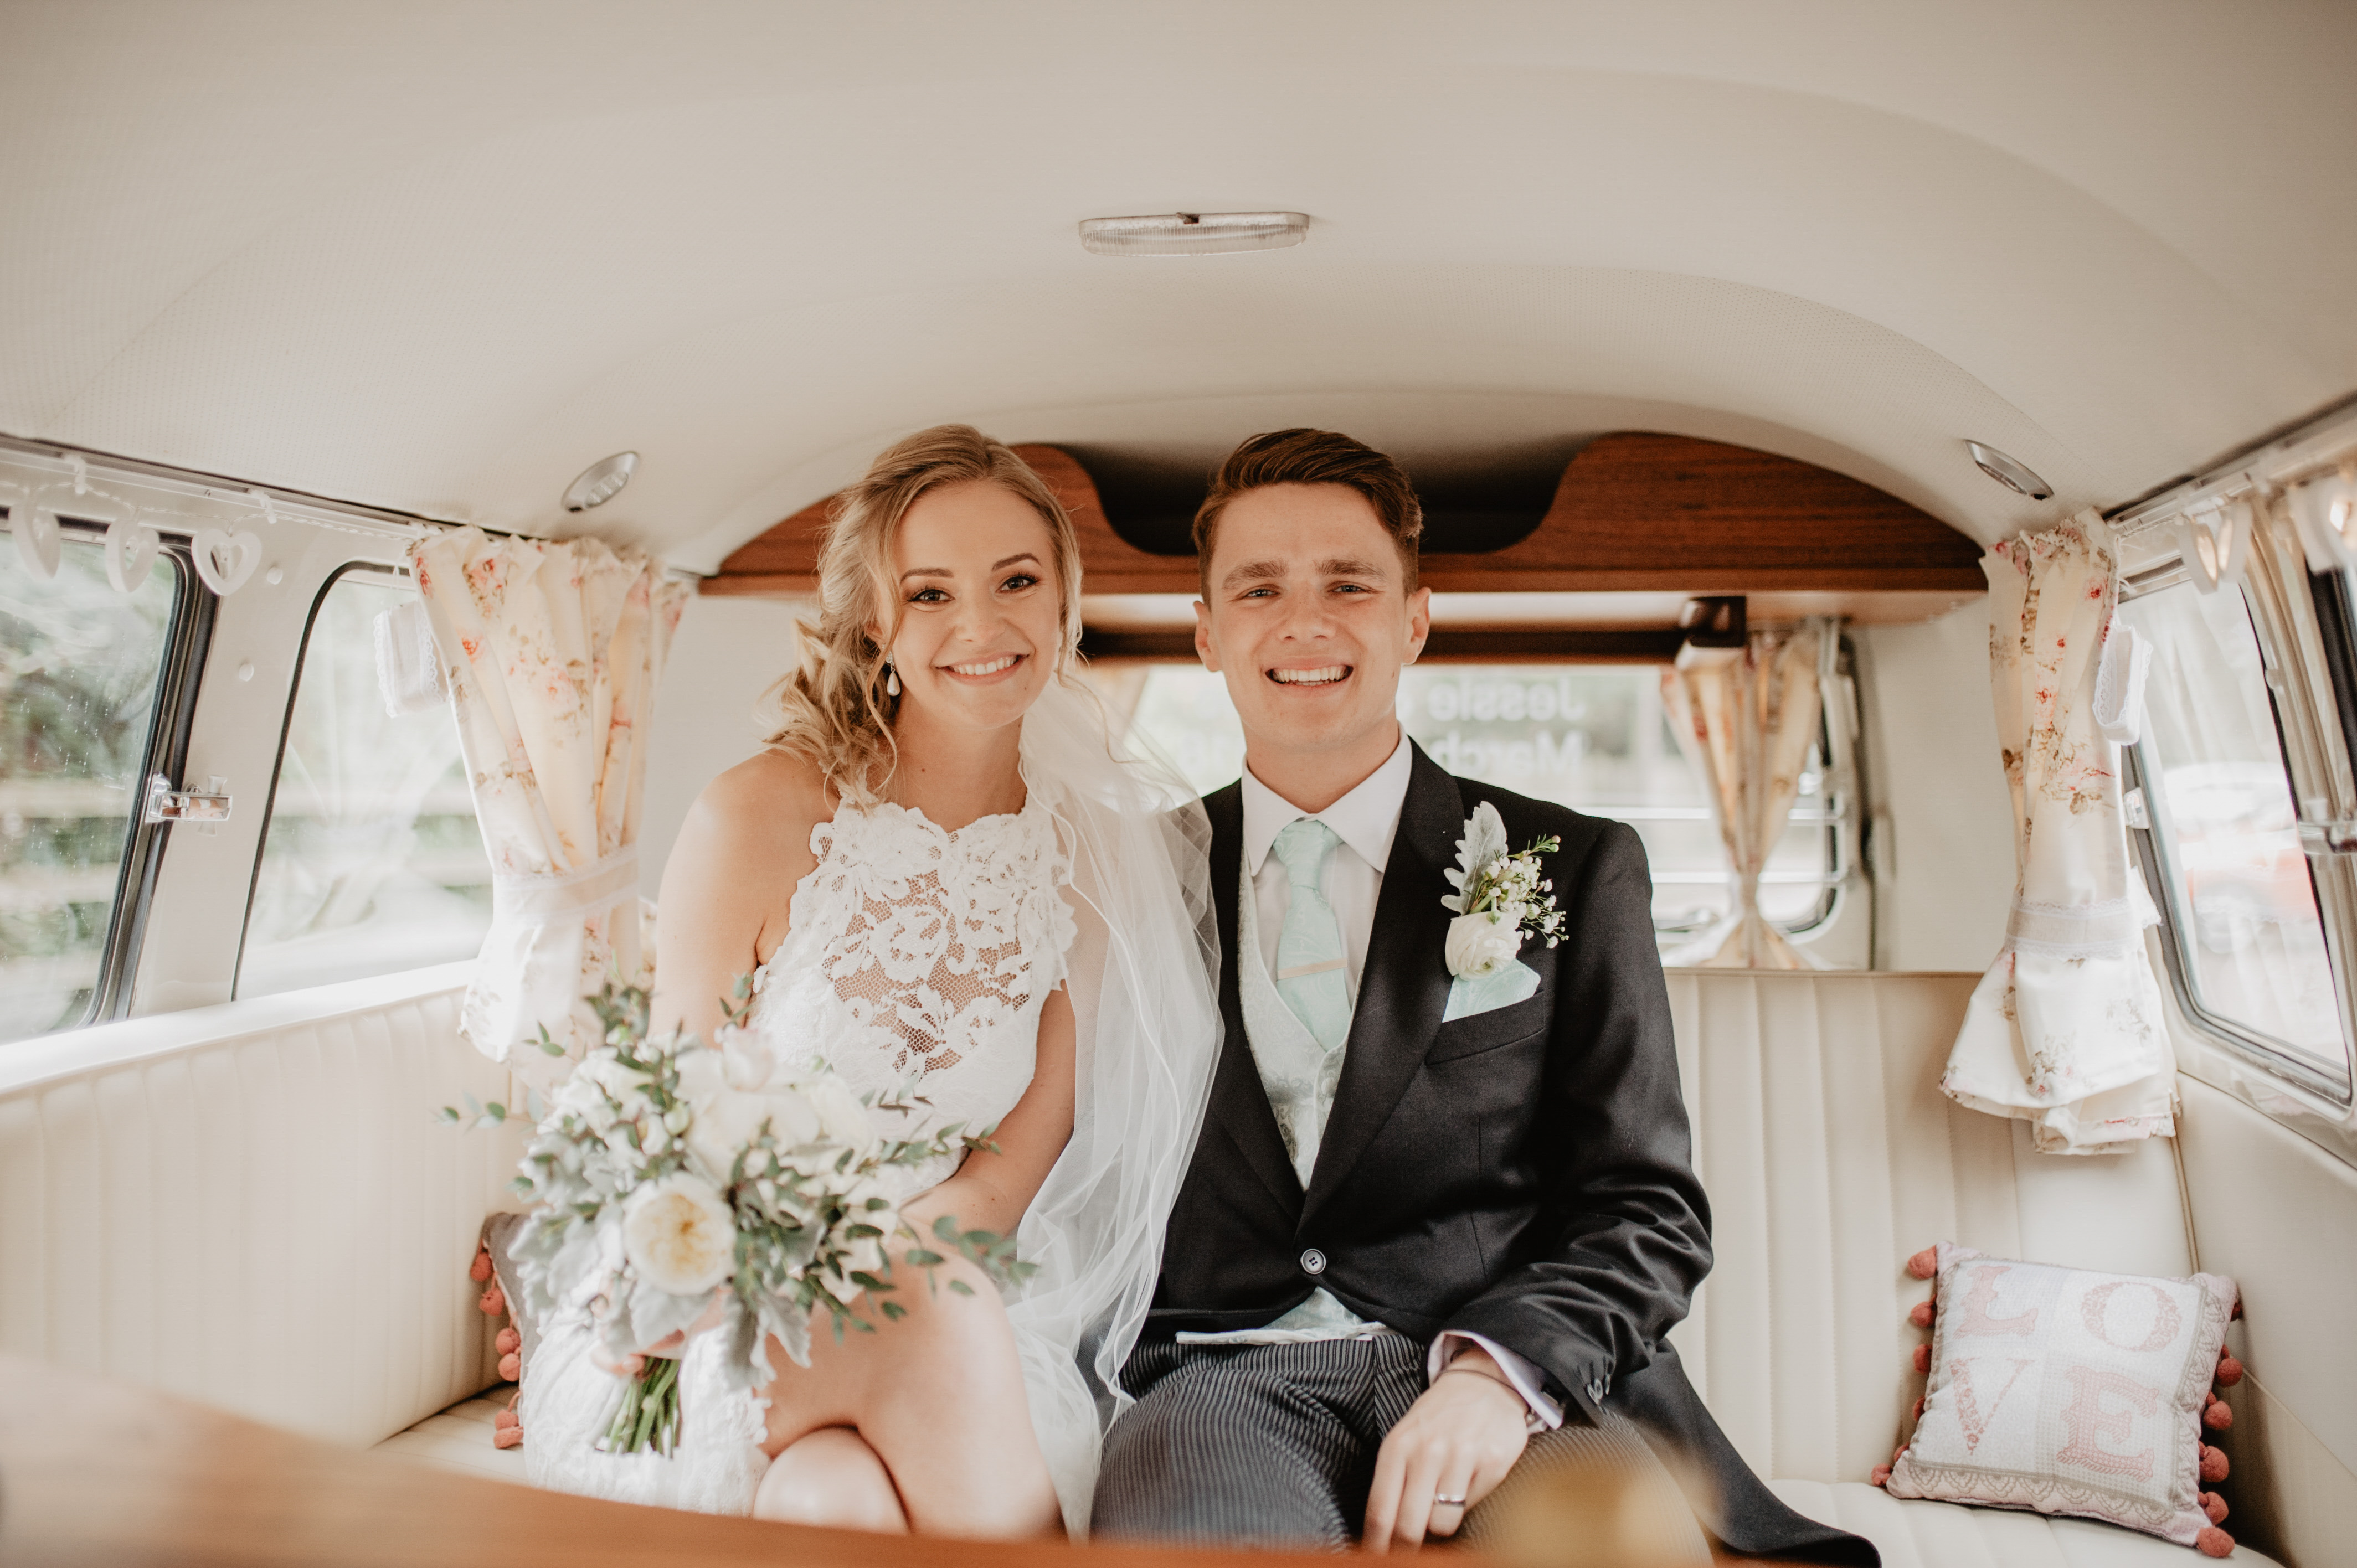 VW Classic Wedding Cars Interior